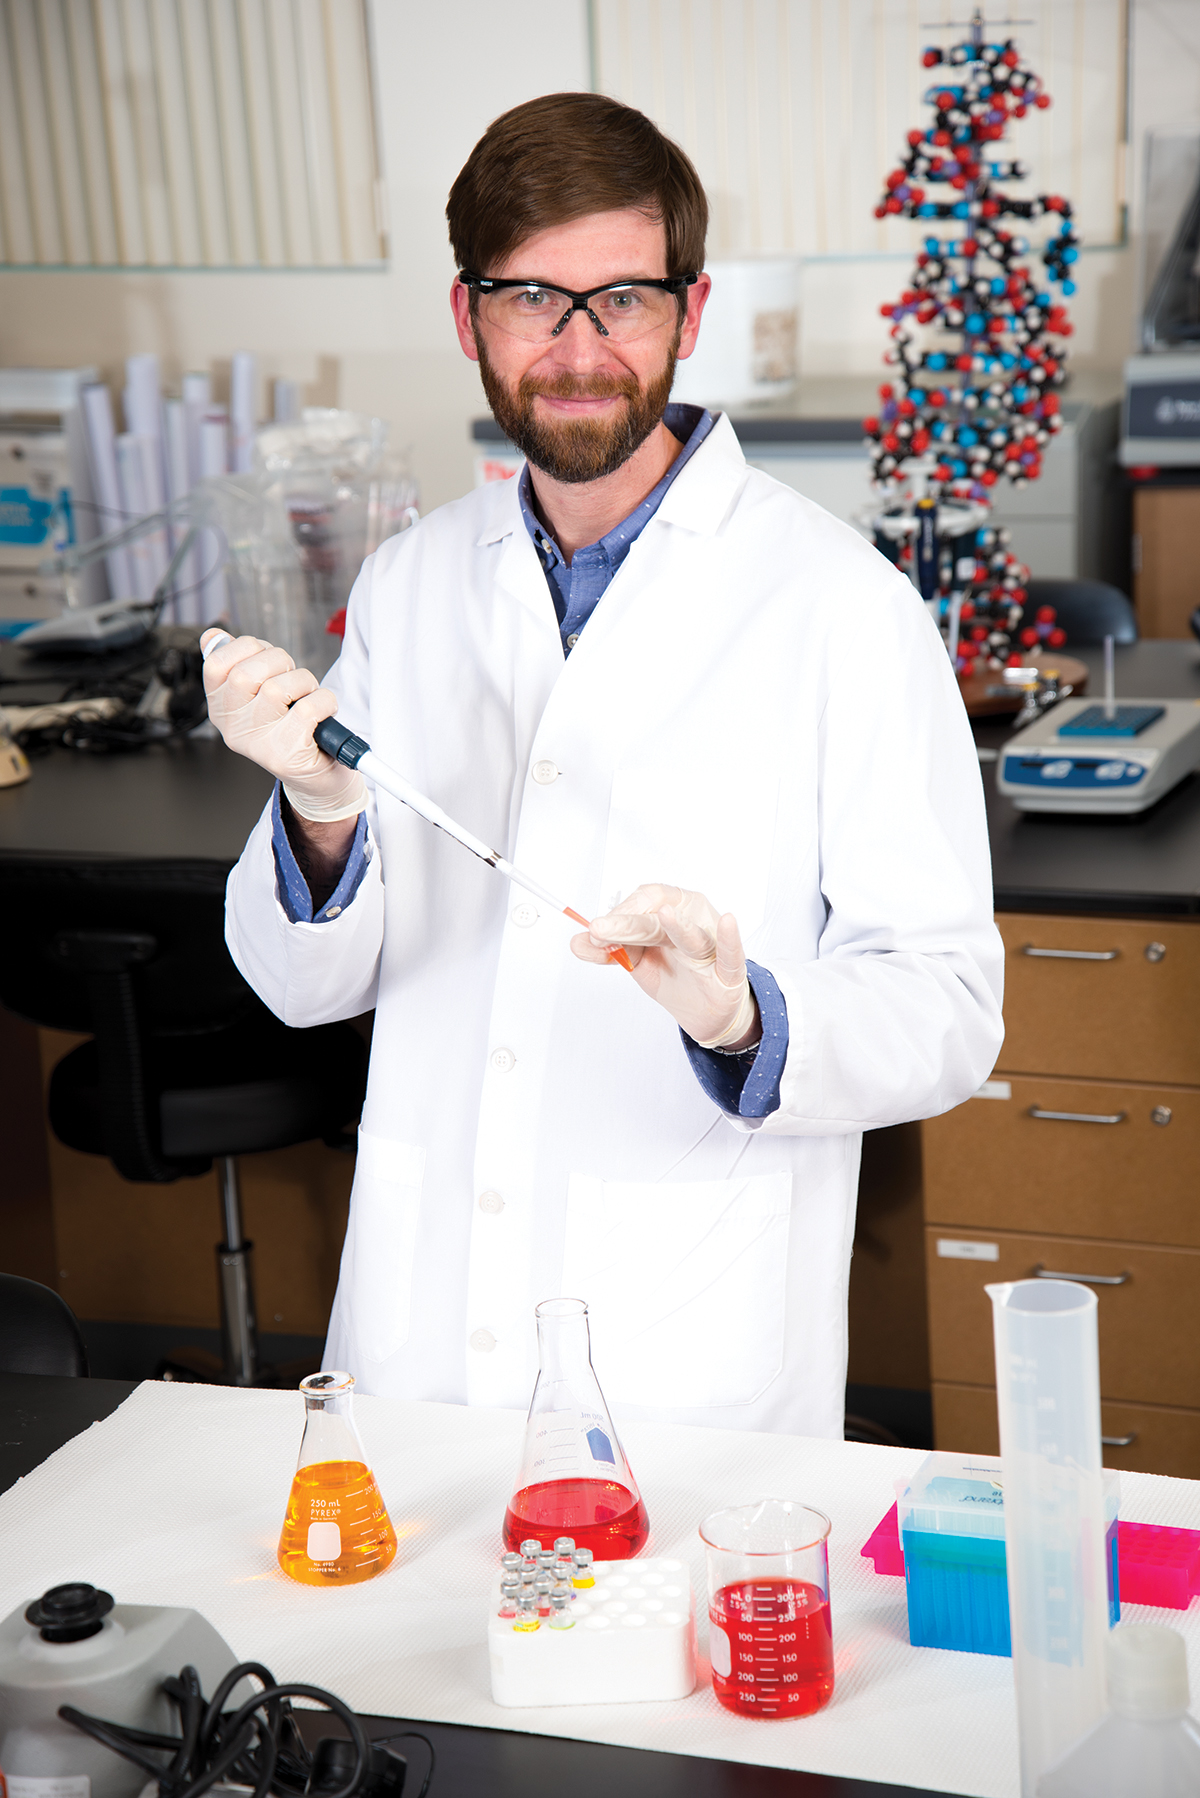 Cleary in the lab. He's now an assistant scientist at Somahlution, a Jupiter-based life science company.